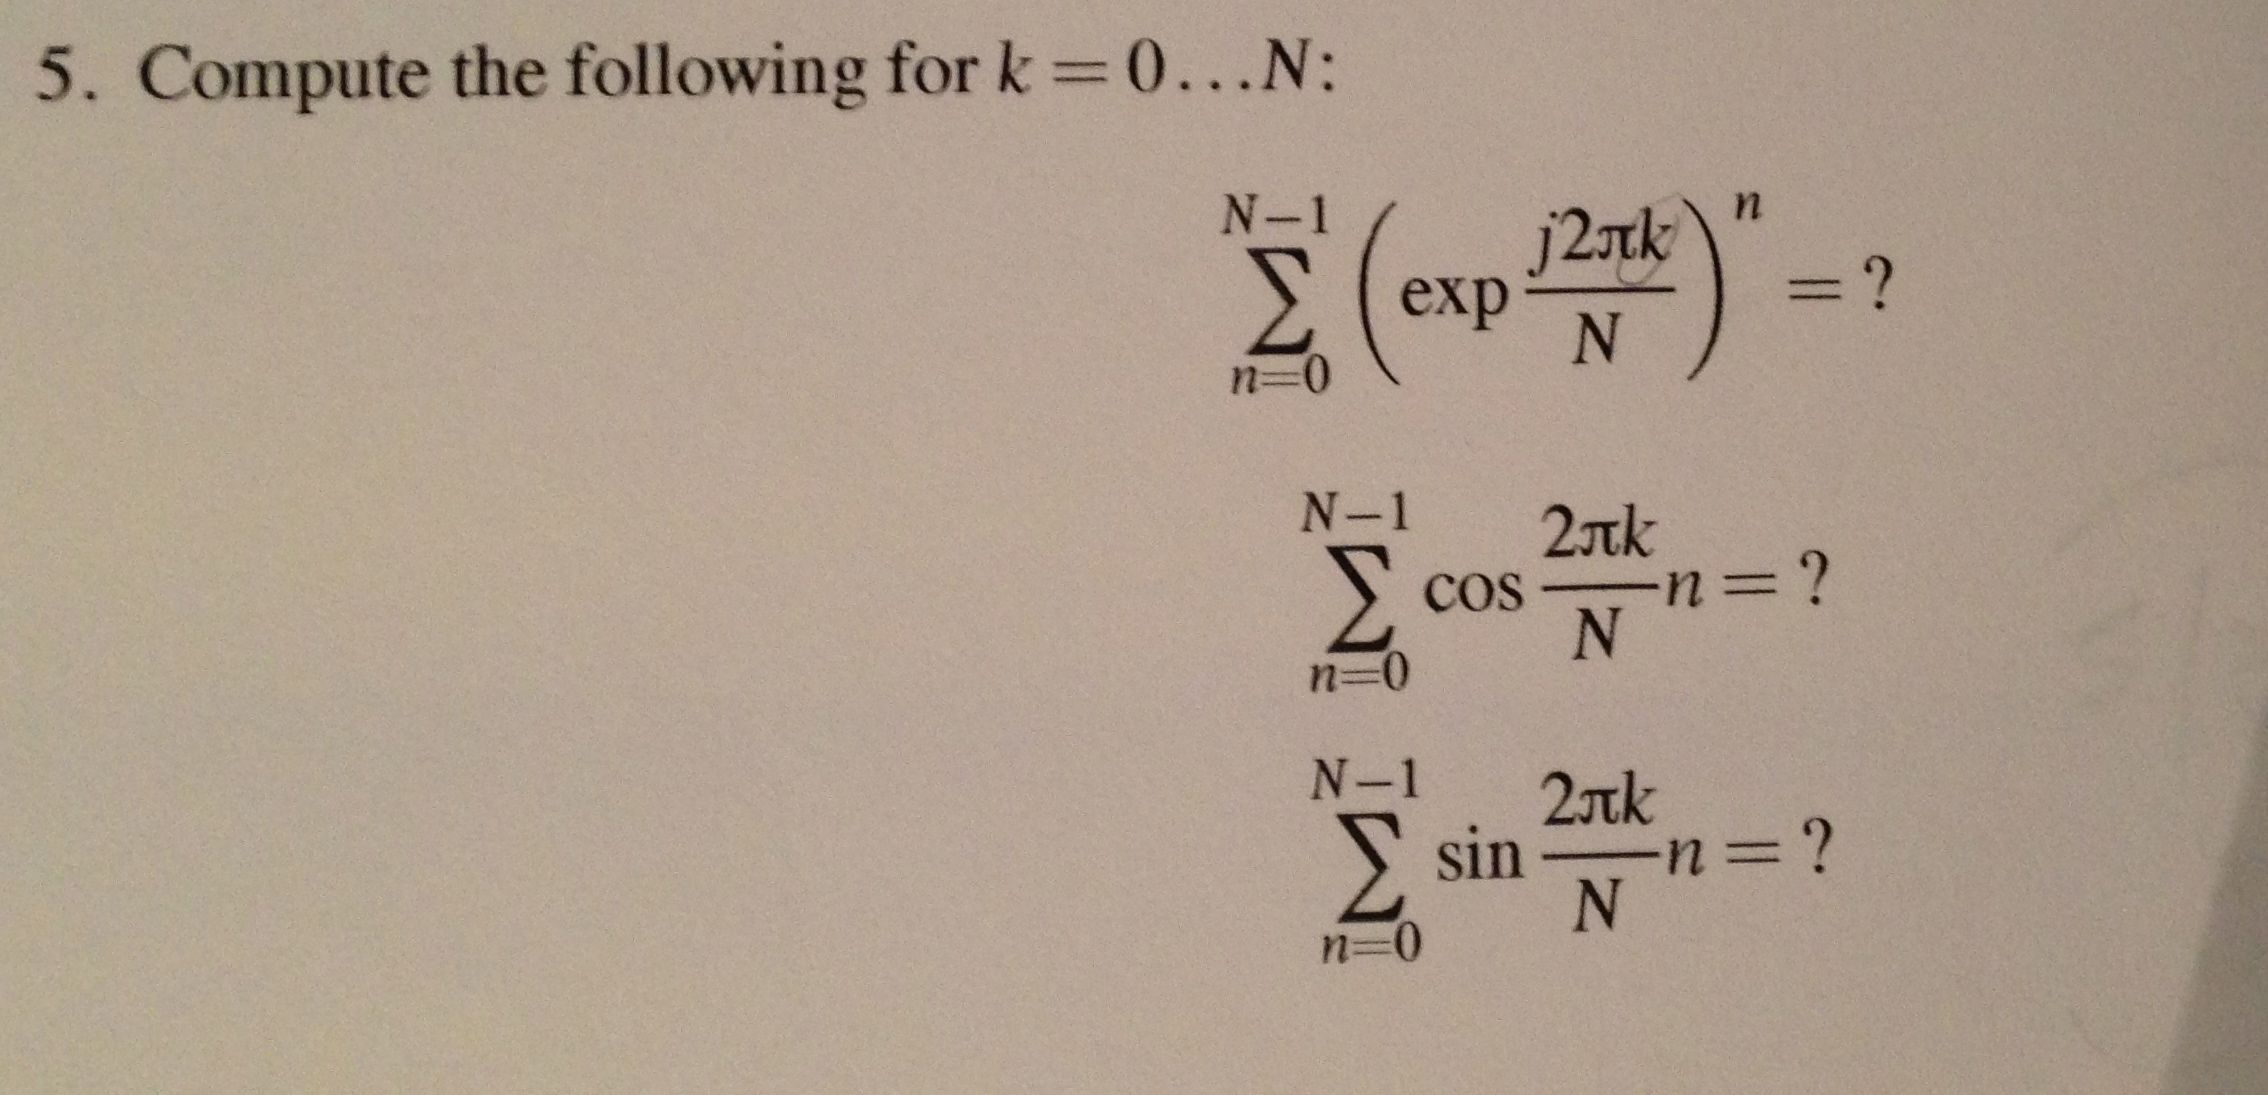 Compute the following for k=0.N